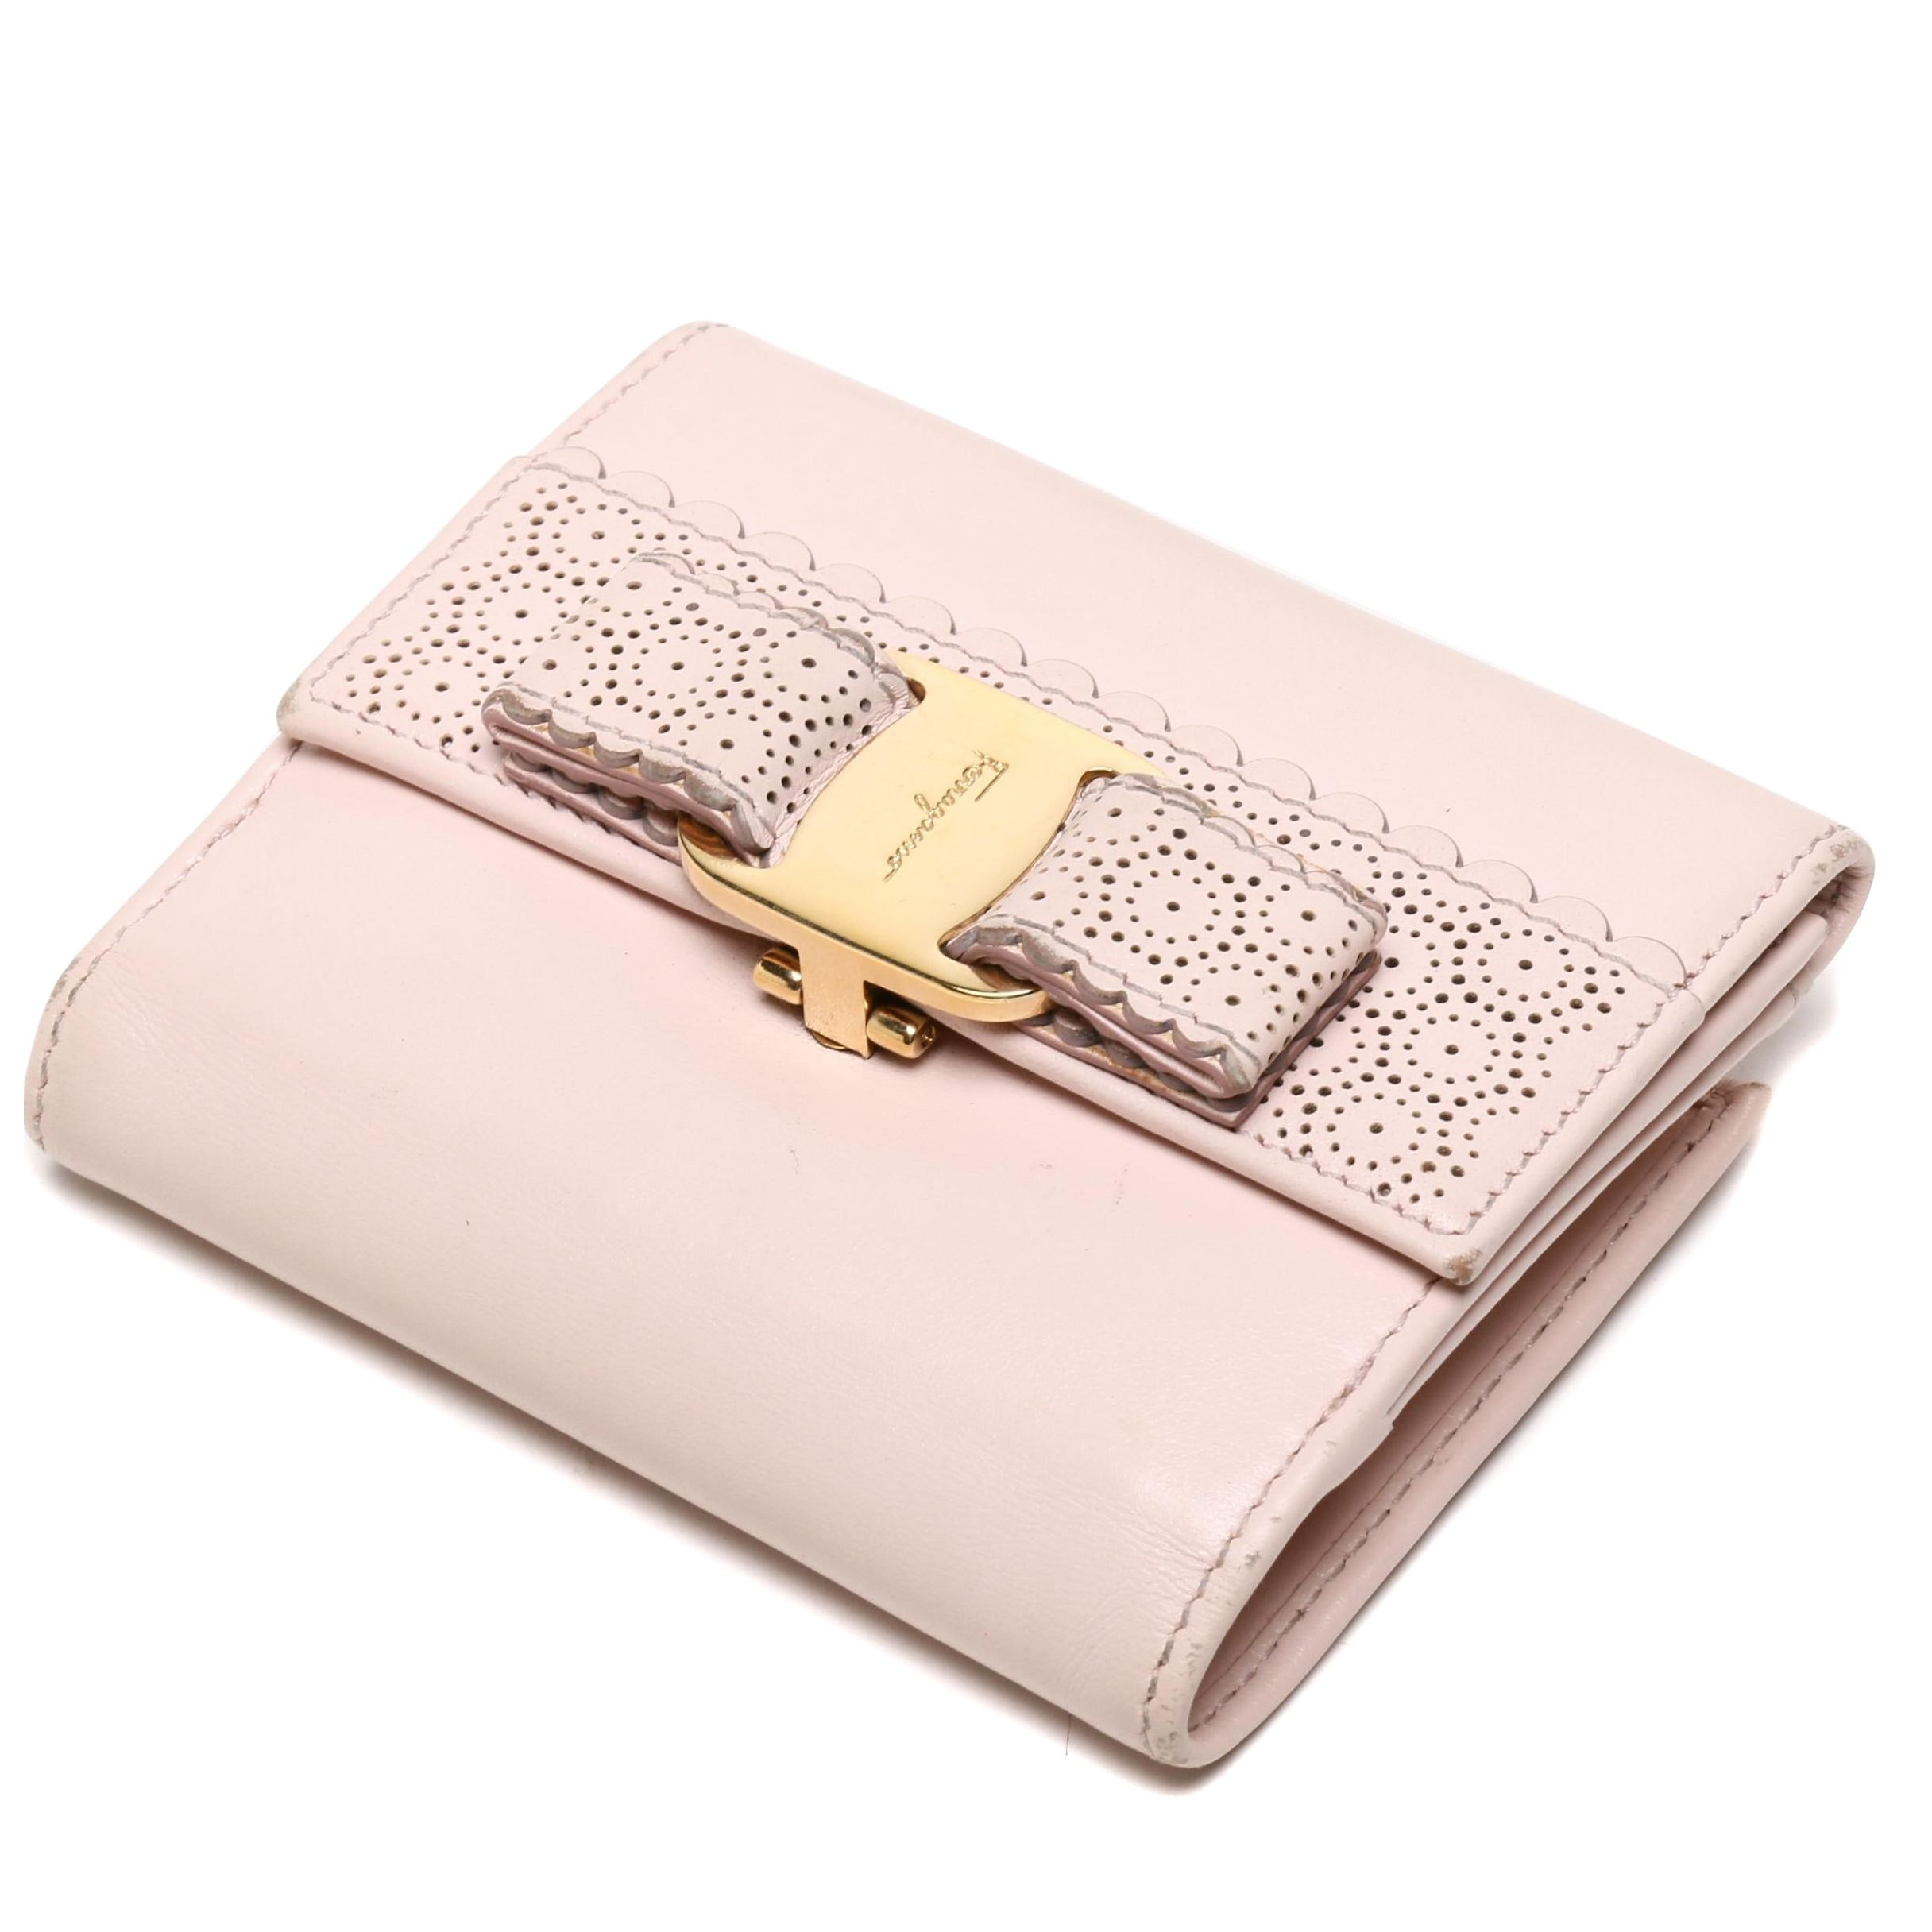 Salvatore Ferragamo Pale Pink Perforated Leather Bifold Wallet